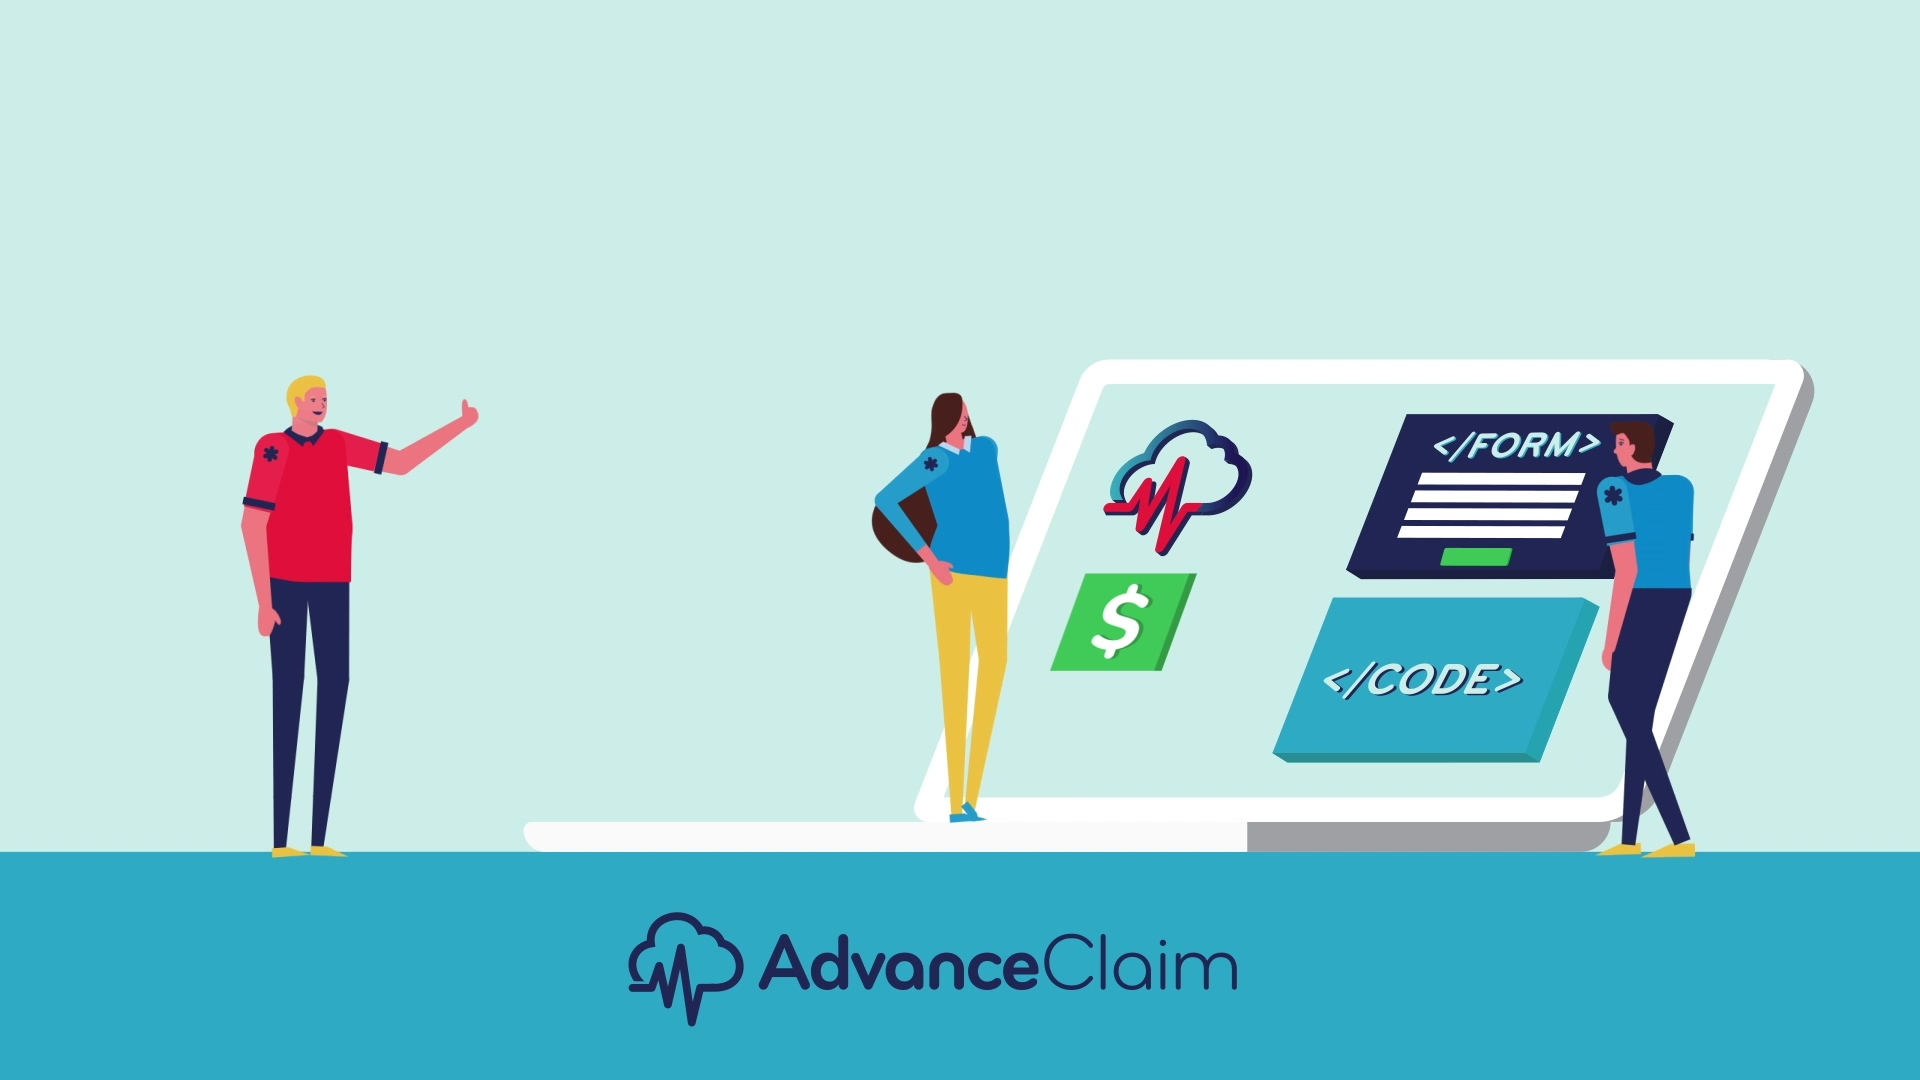 AdvanceClaim Video